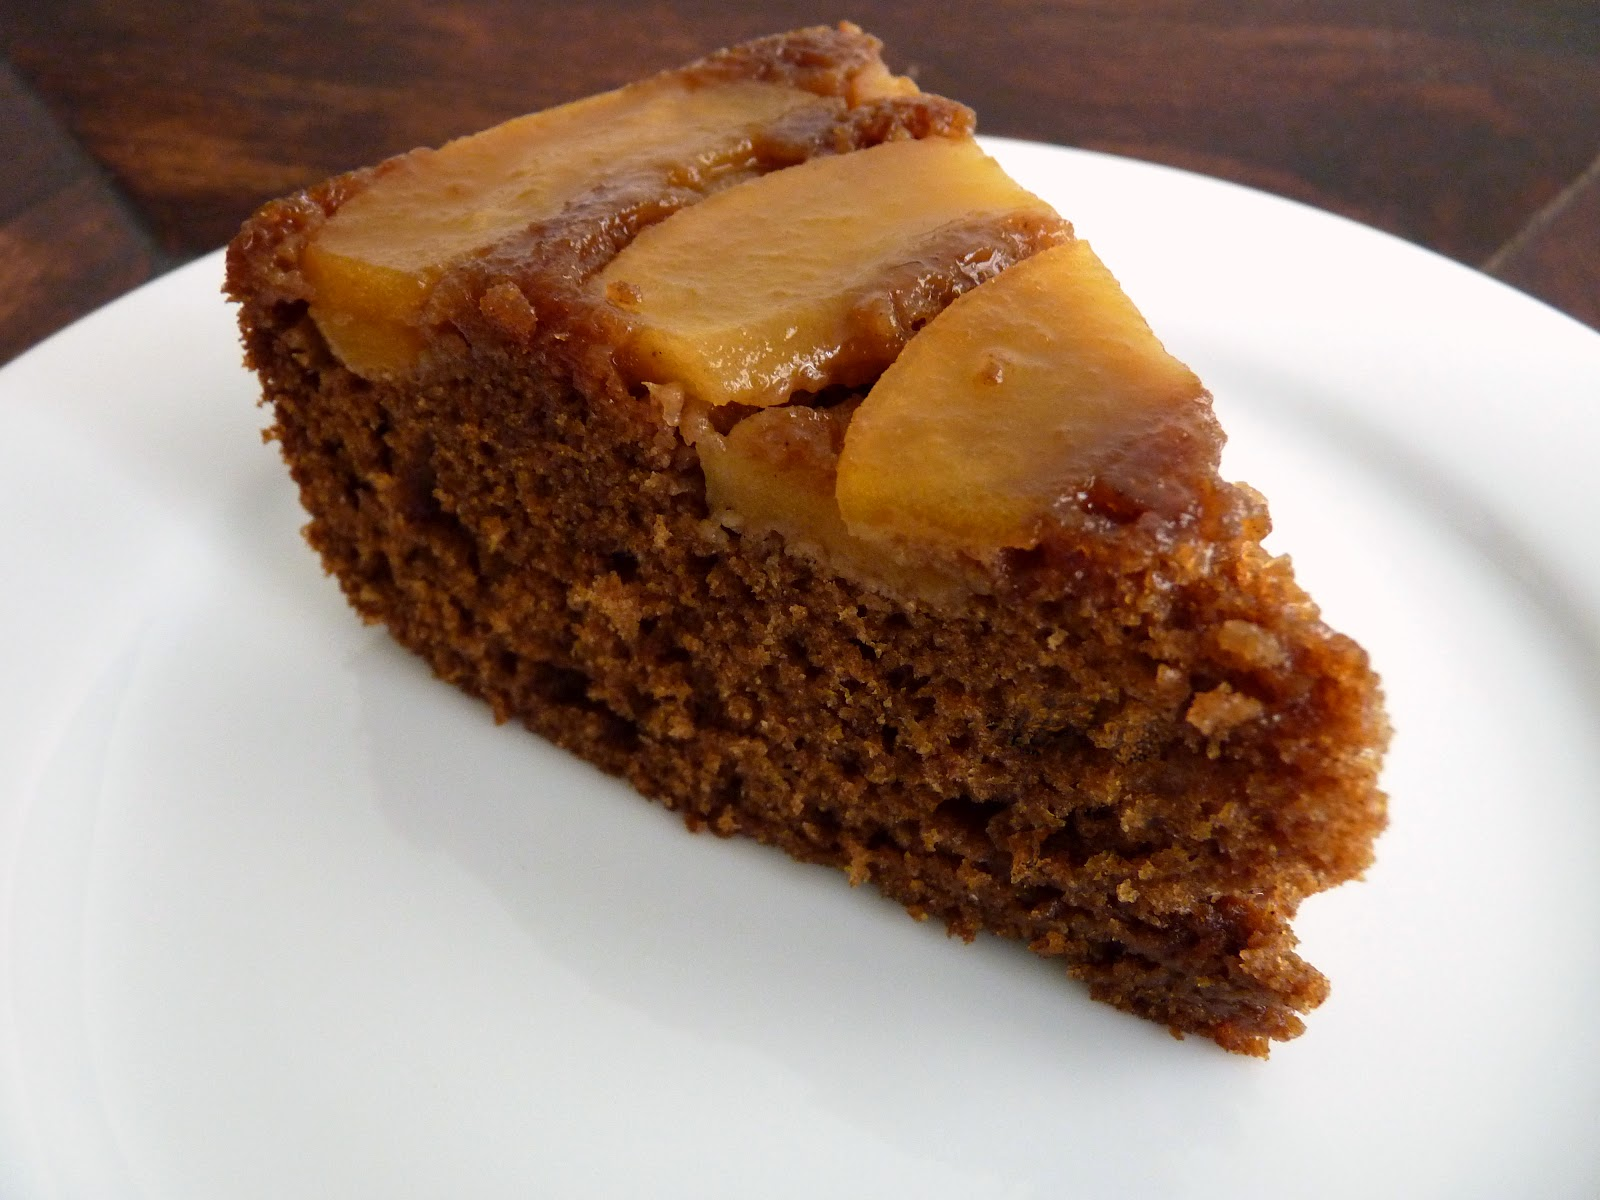 ... apple spice cake baking in the oven is sure to bring apple spice dump